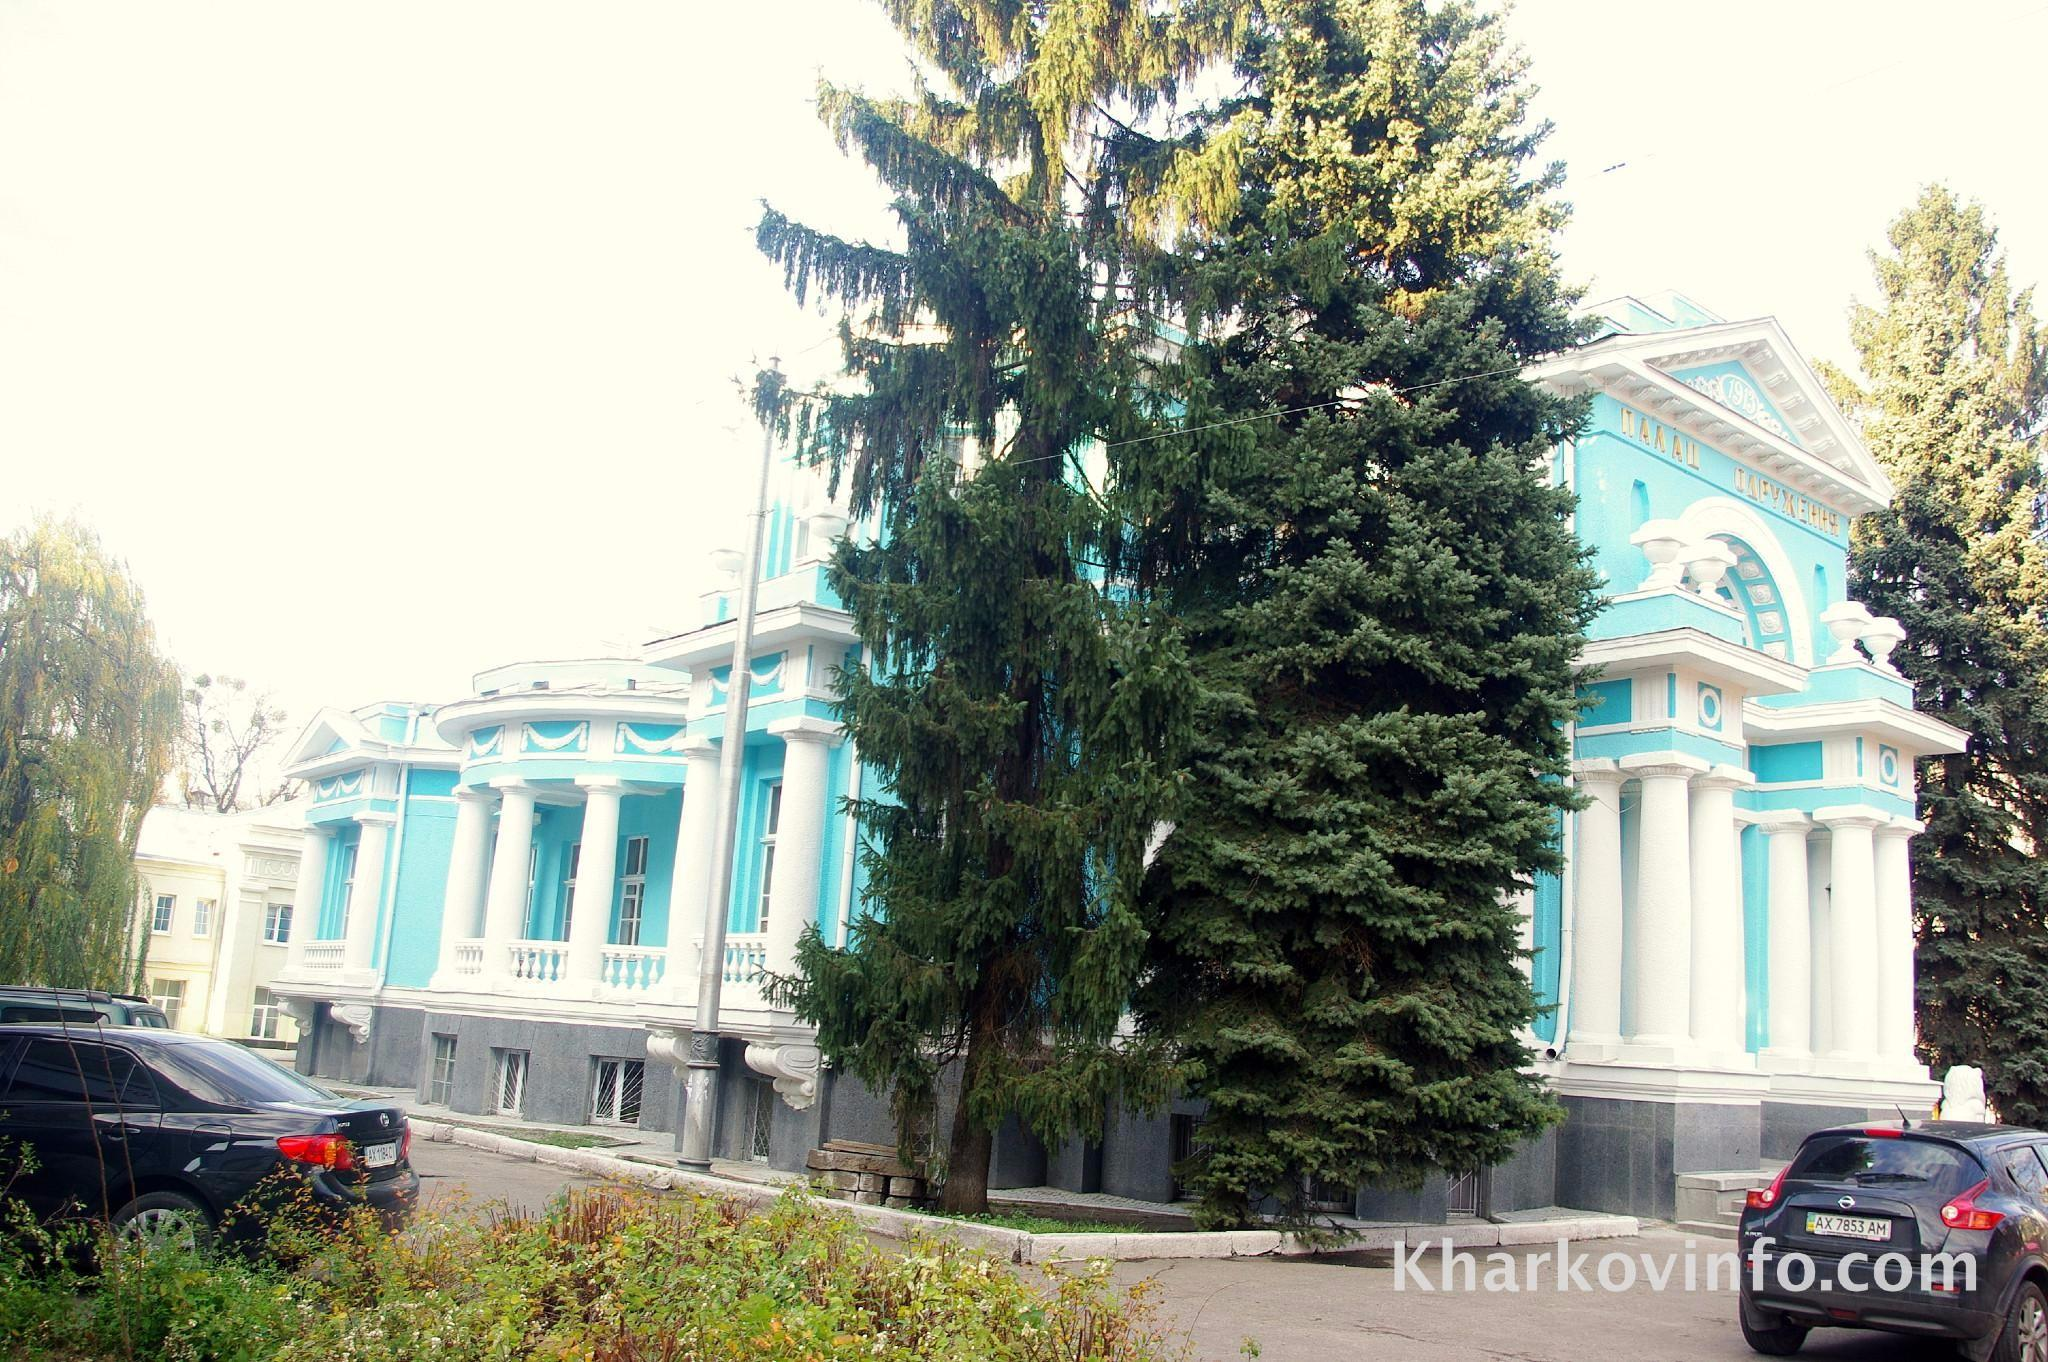 Water delivery in Kharkiv and region: a selection of sites